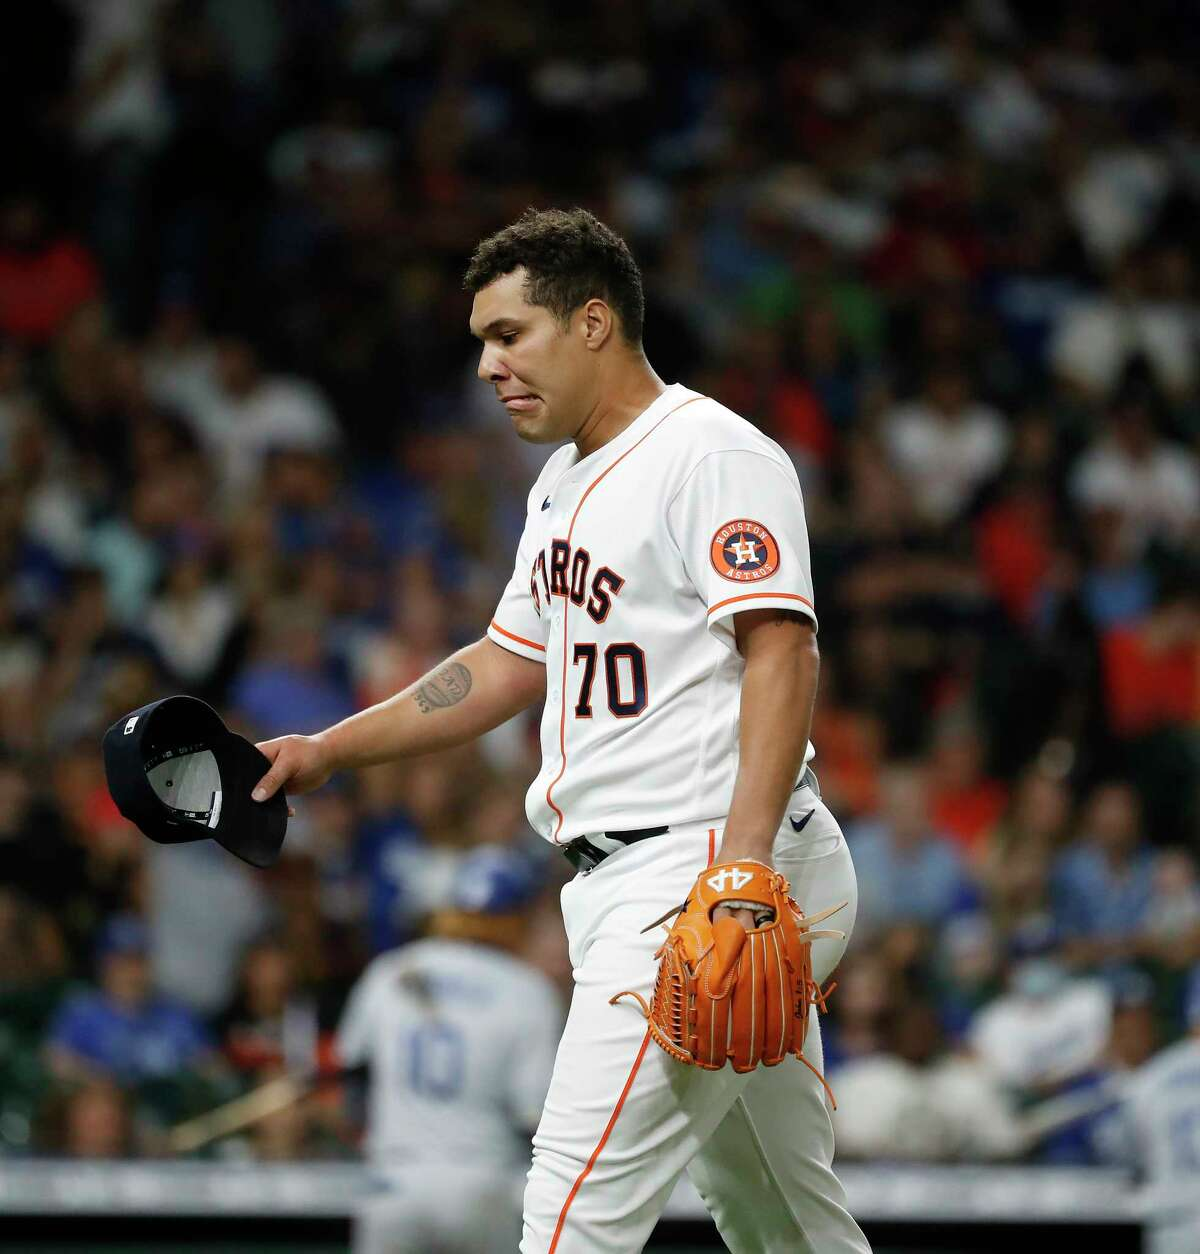 Houston Astros relief pitcher Andre Scrubb (70) reacts after issuing two walks with bases loaded during the eighth inning of an MLB baseball game at Minute Maid Park, Tuesday, May 25, 2021, in Houston.